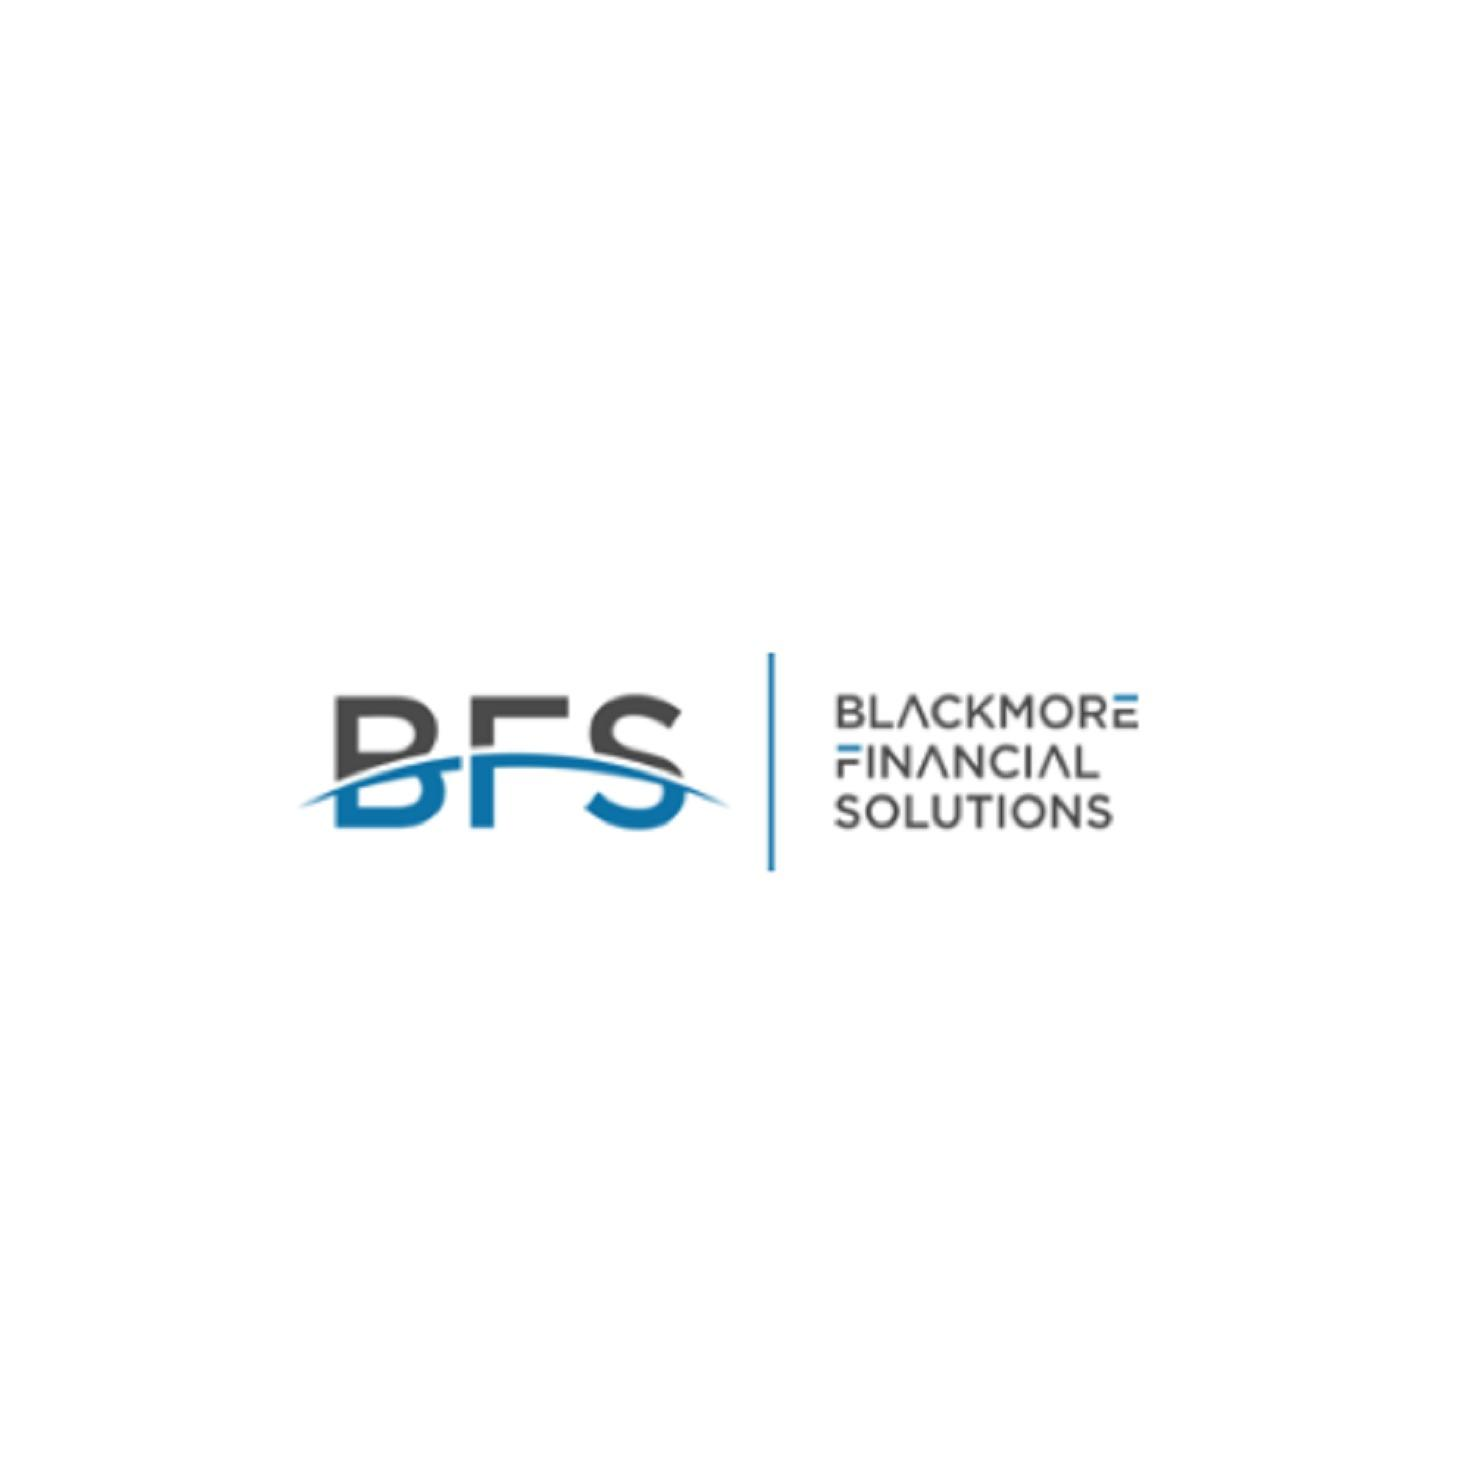 Blackmore Financial Solutions